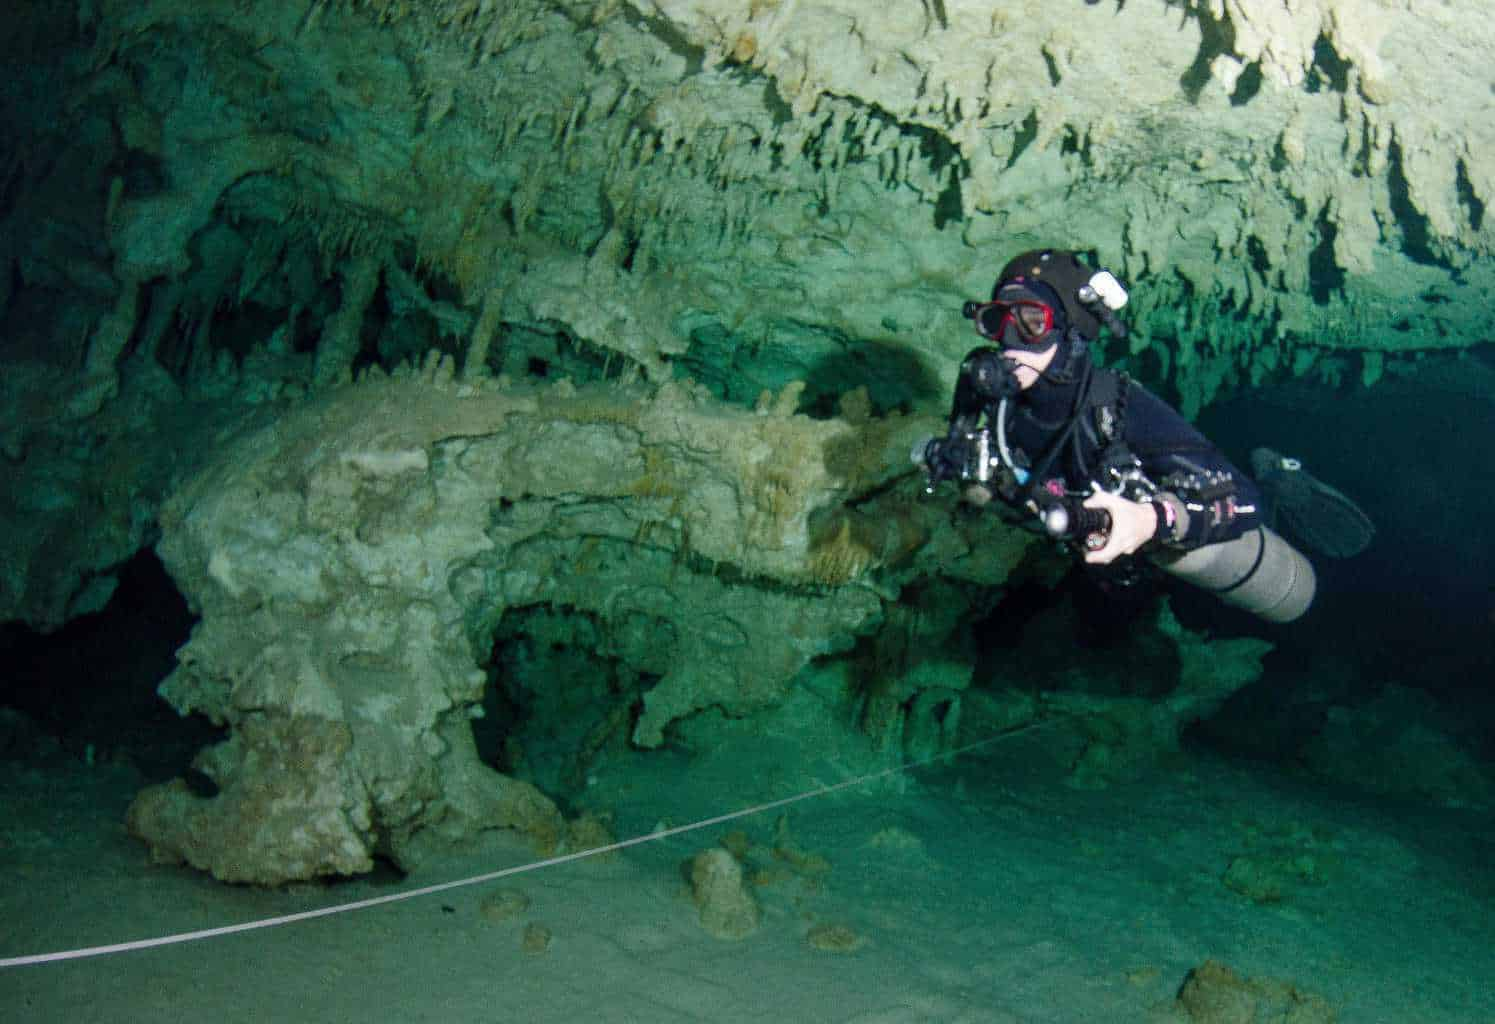 Gran Cenote is the heart of the Sac Aktun system (The world's longest underwater cave system) which means 'White Cave'. As the name states, white walls, crystal-clear waters and spectacular stalactites and stalagmites will awe not only experienced divers, but also beginners.